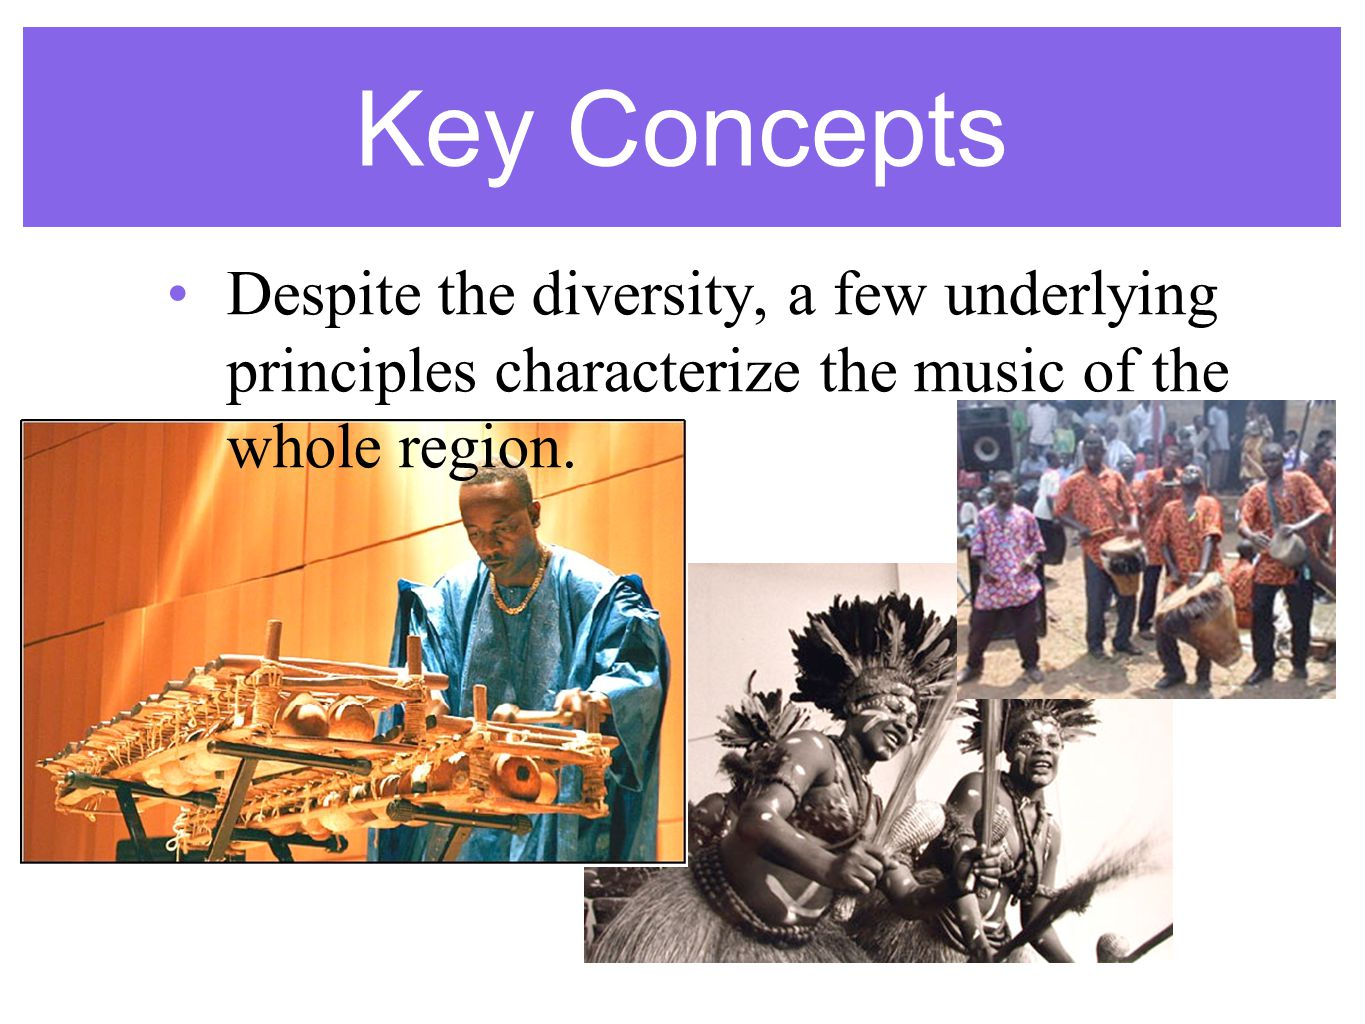 Key Concepts Despite the diversity, a few underlying principles characterize the music of the whole region.